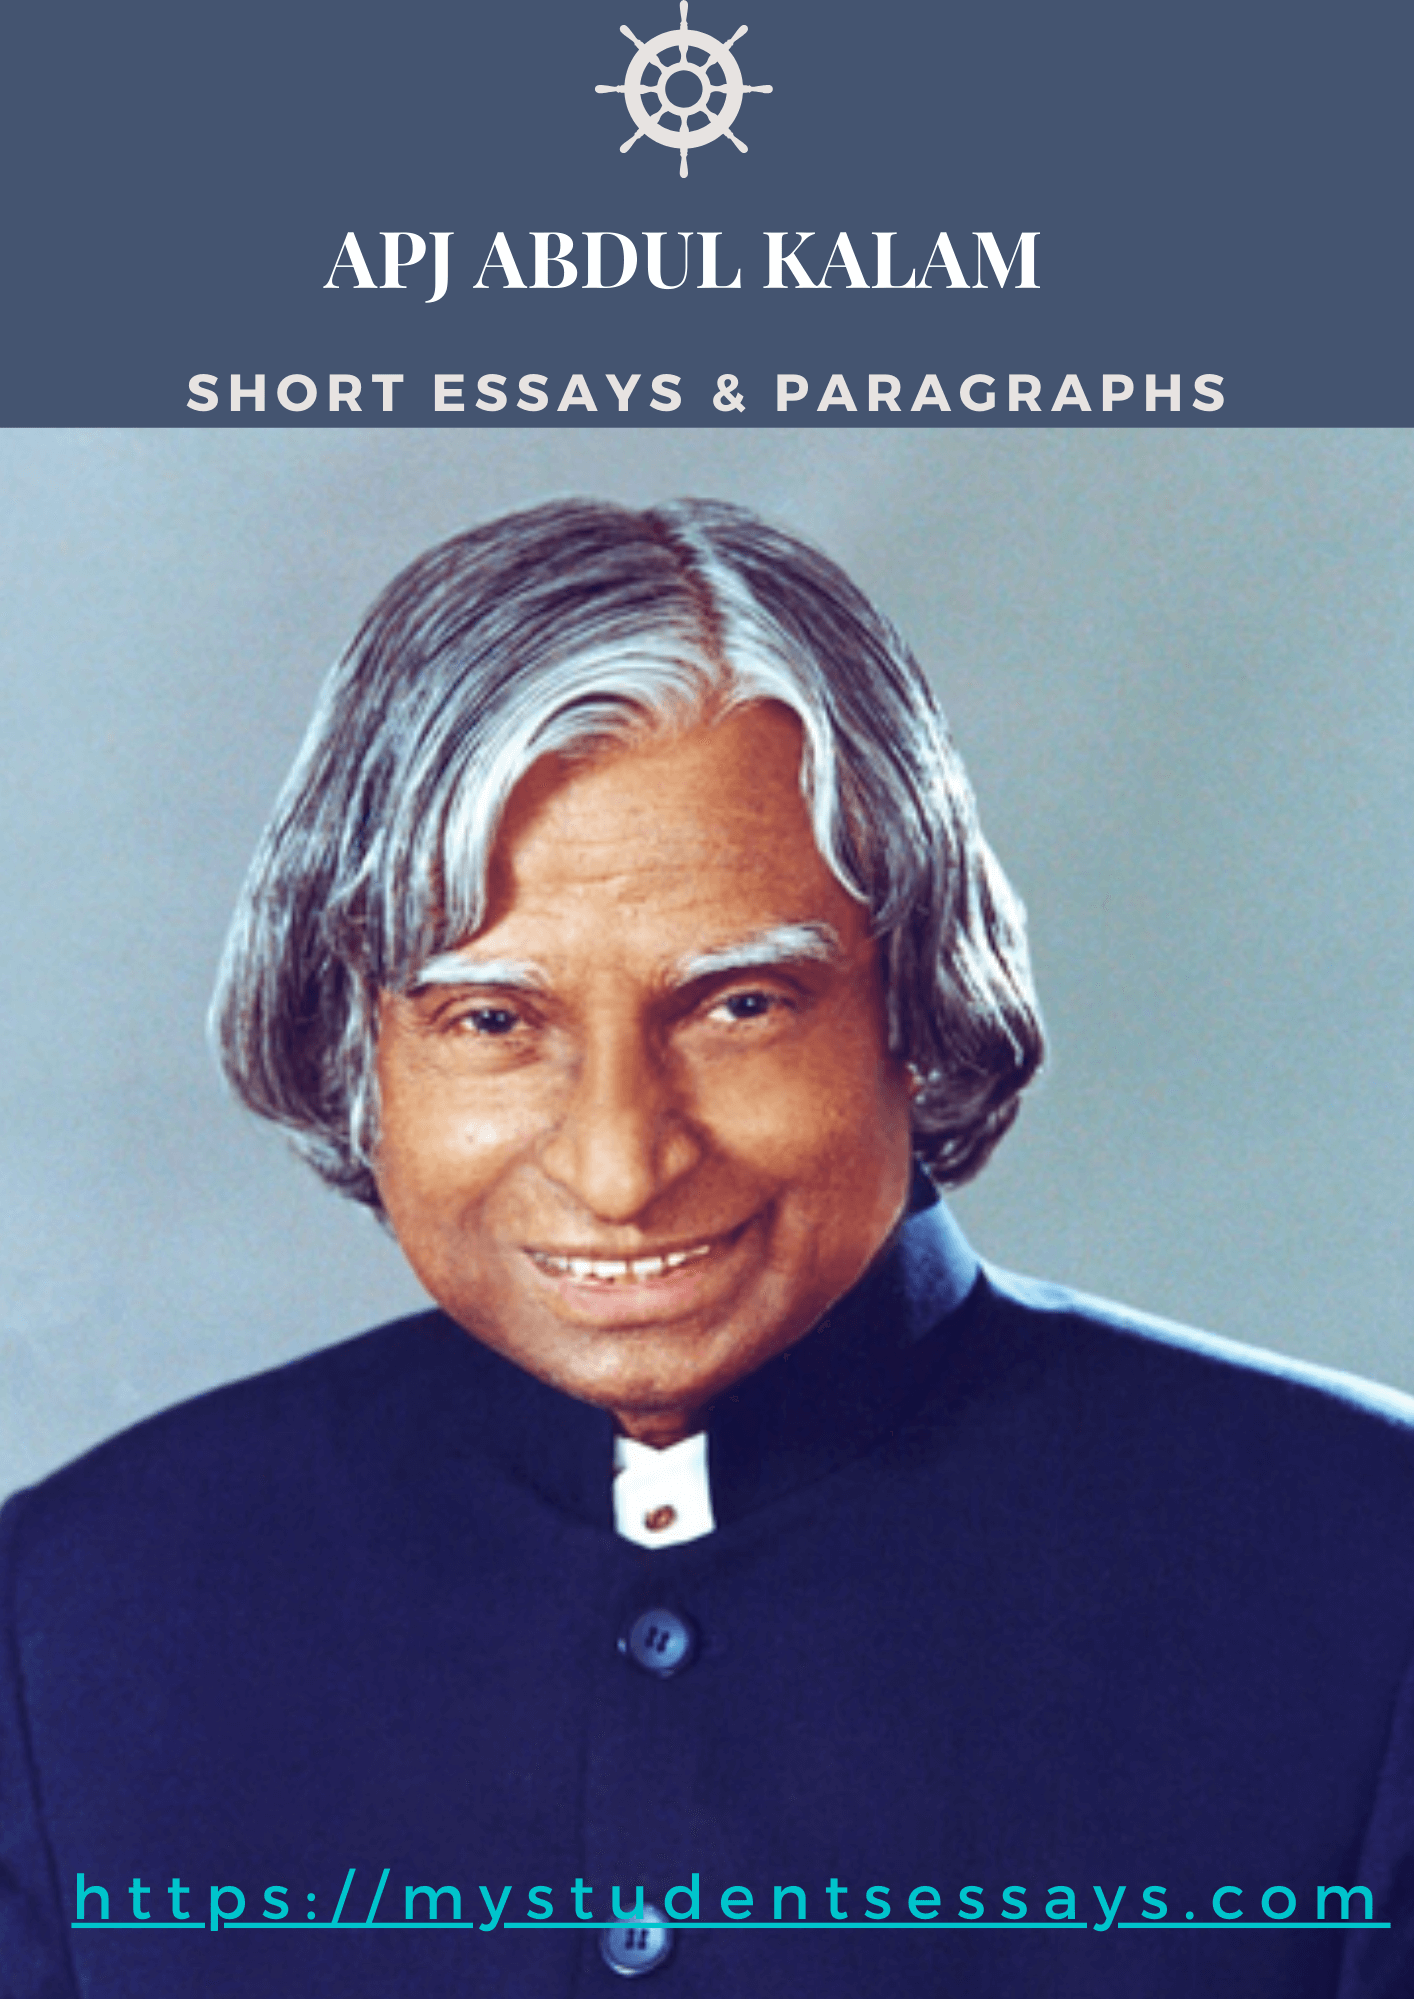 APJ Abdul Kalam Essay, short essay, Paragraph, short note, quote for students